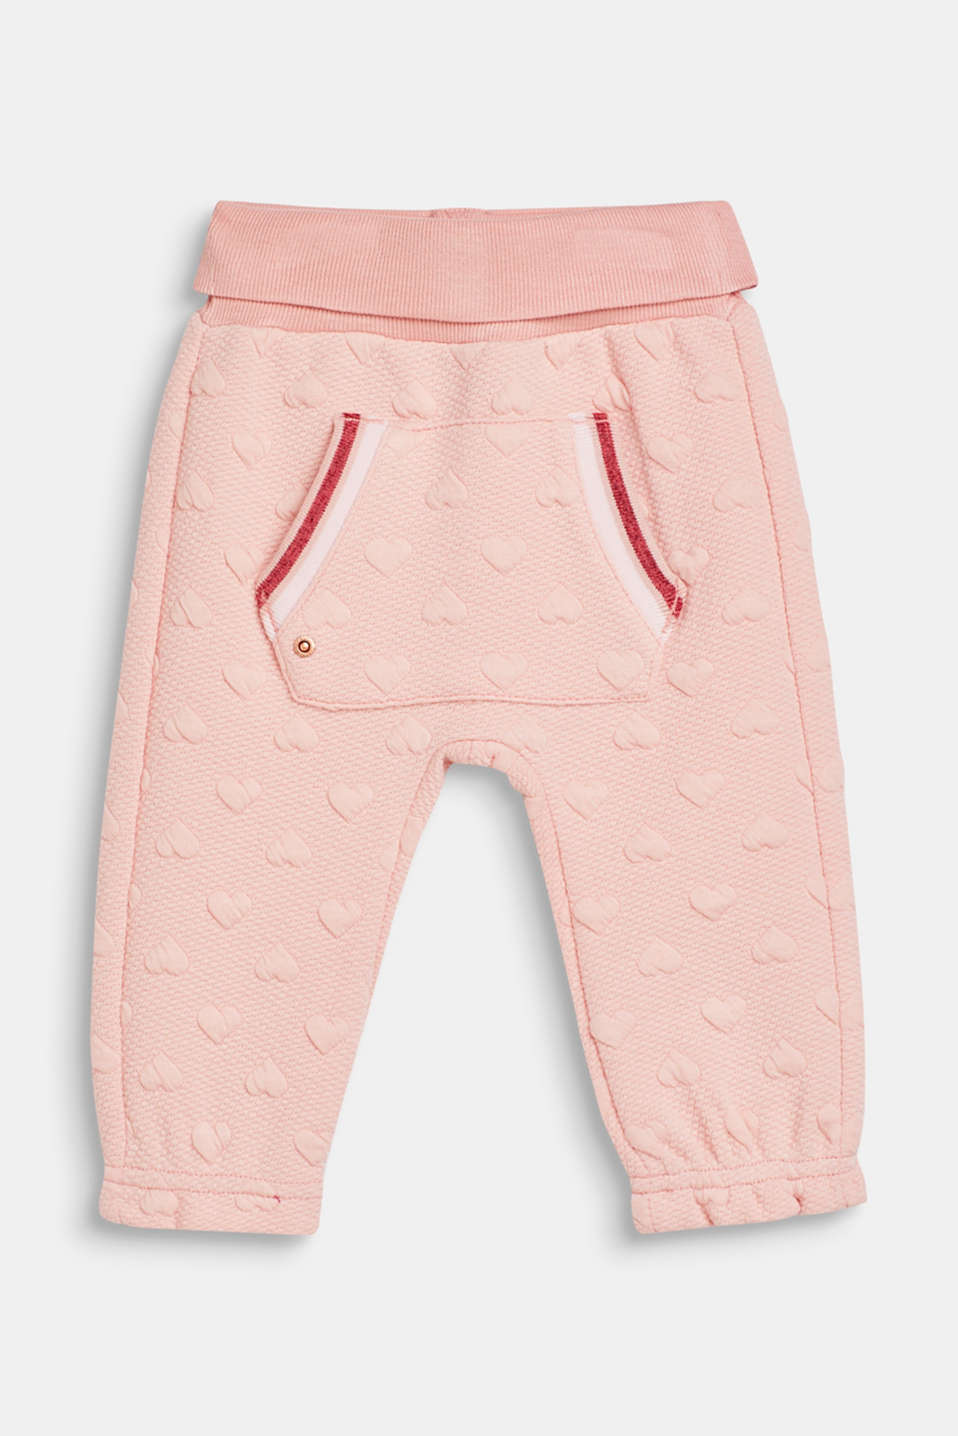 Esprit - Sweatshirt fabric trousers with a heart-shaped texture